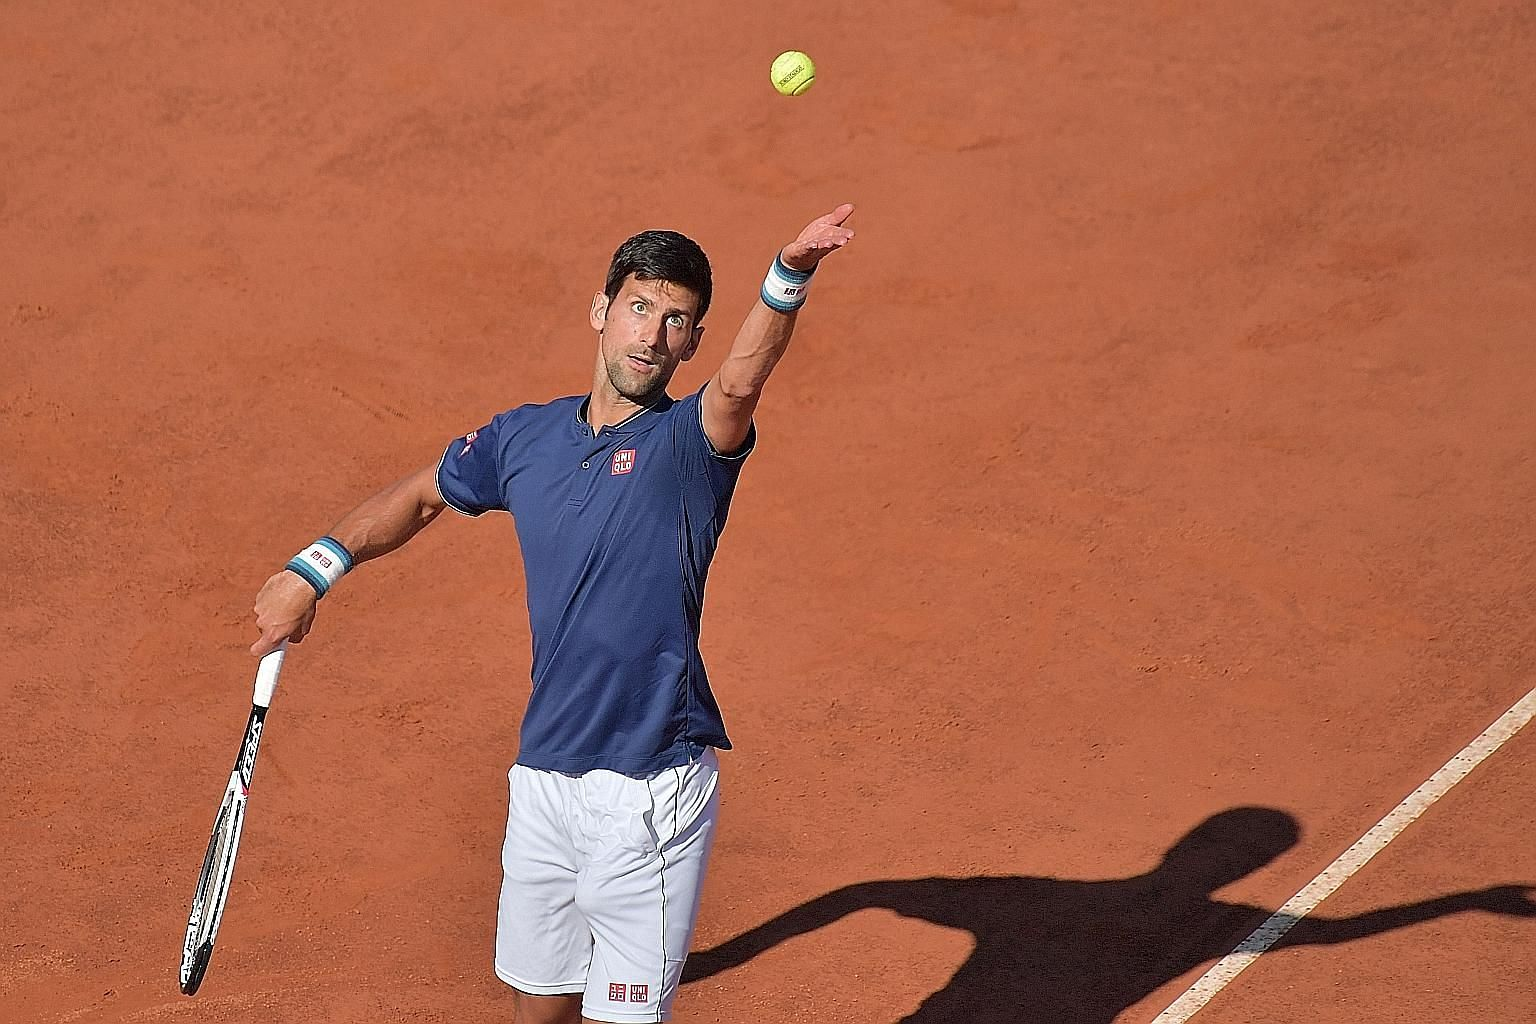 Novak Djokovic could use with some tailored advice from his new coach Andre Agassi on regaining some of his world-beating form. The American former world No. 1 will take Djokovic under his wing beginning this week at Roland Garros.